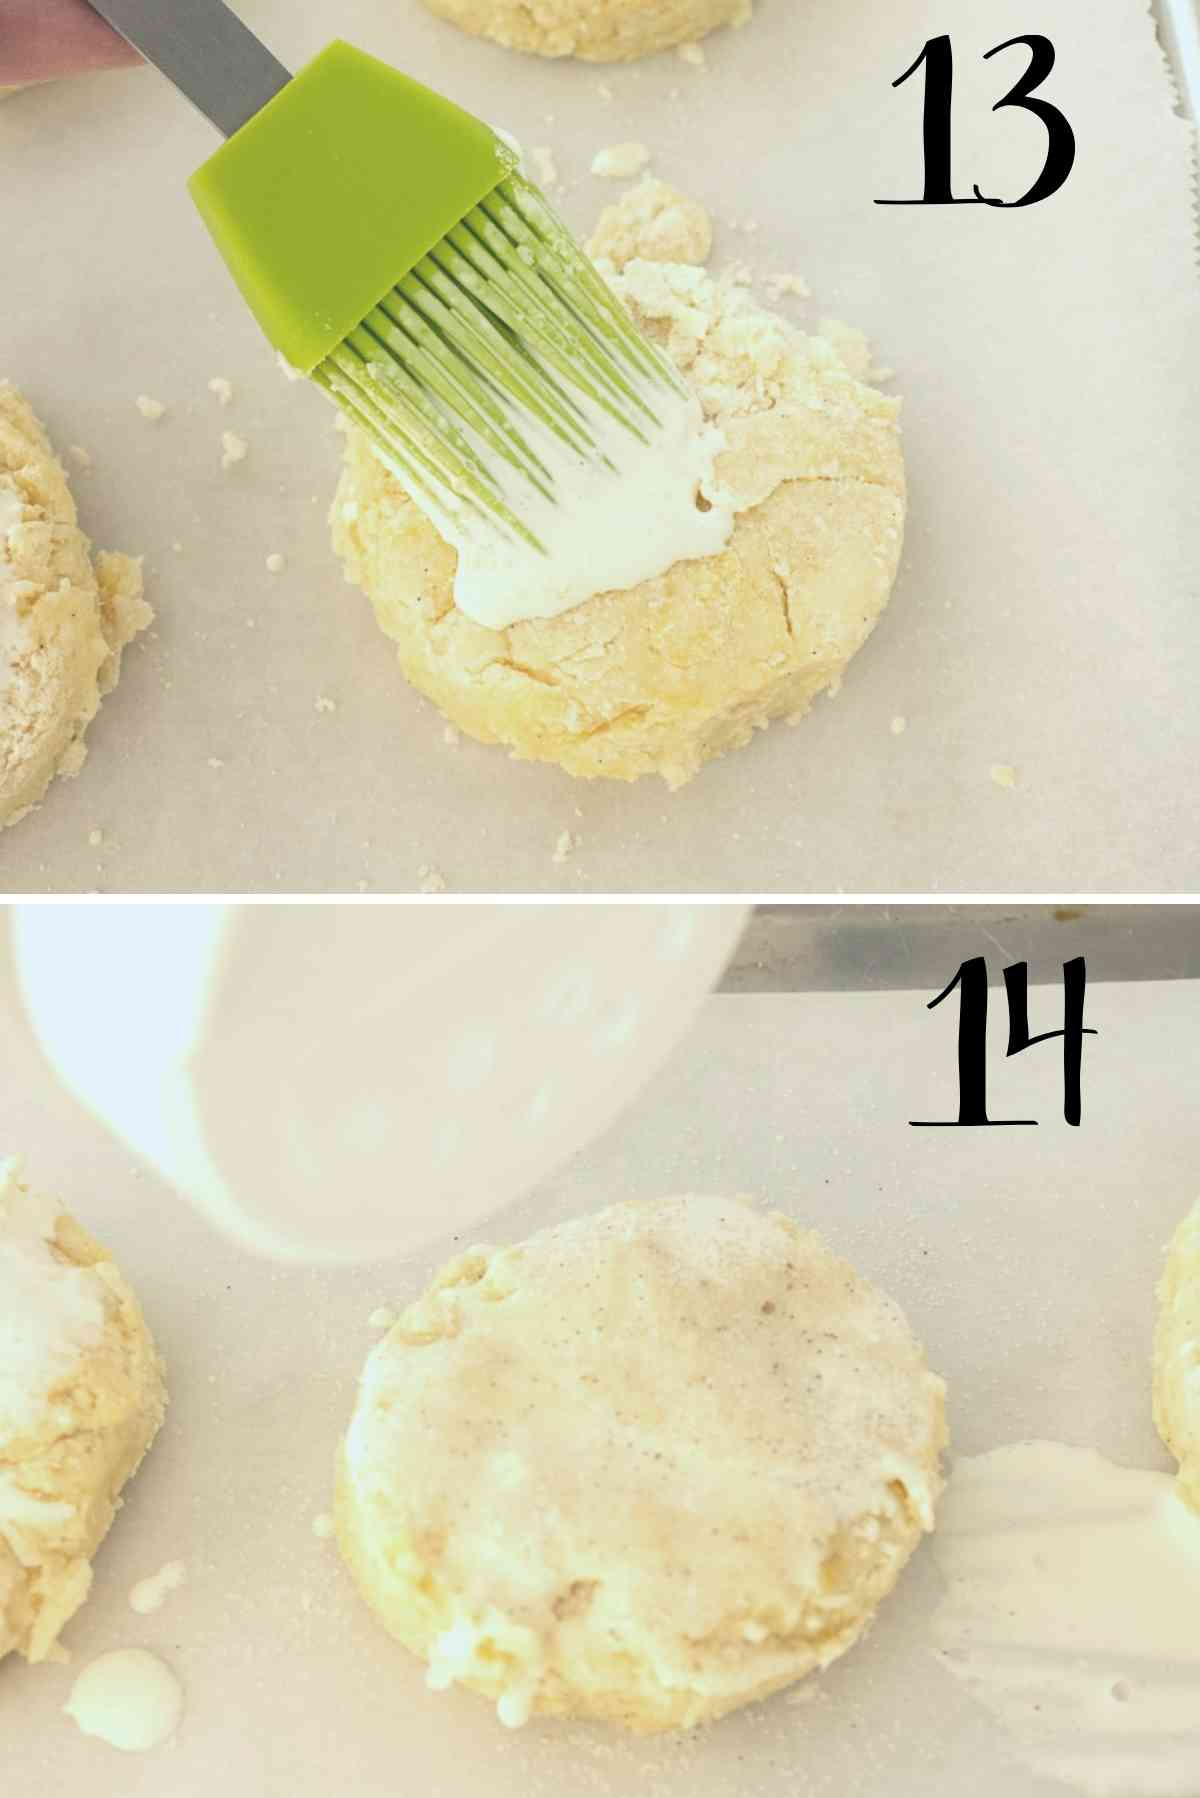 Brush tops with heavy cream and sprinkle with sugar.